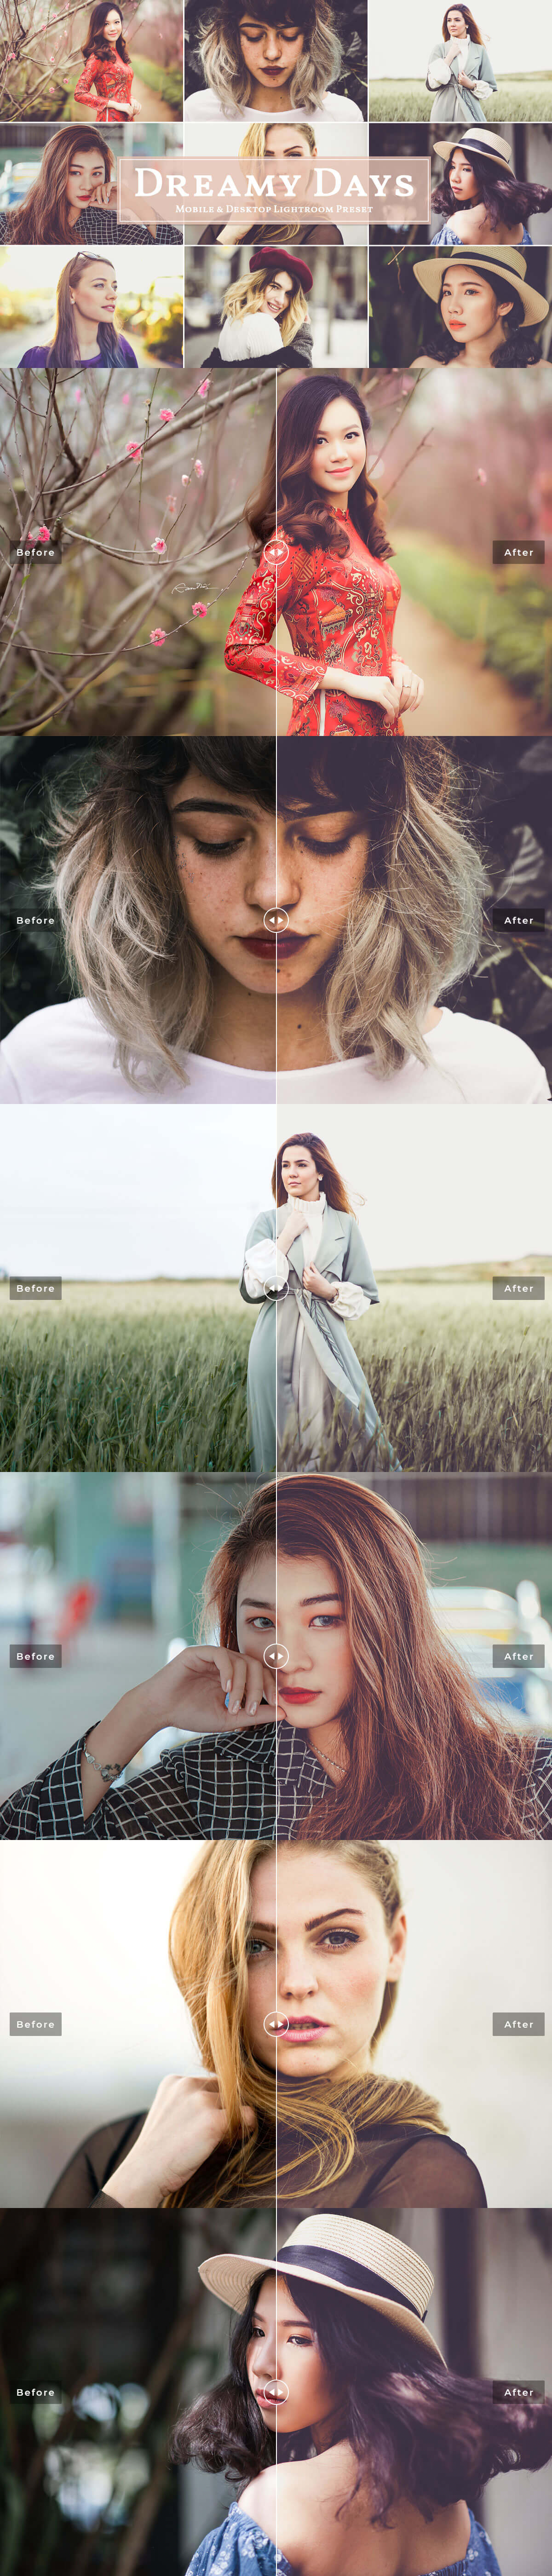 Free Dreamy Days #Mobile and #Desktop Lightroom #Preset will help you achieve dreamy effect and enhance your photographs.